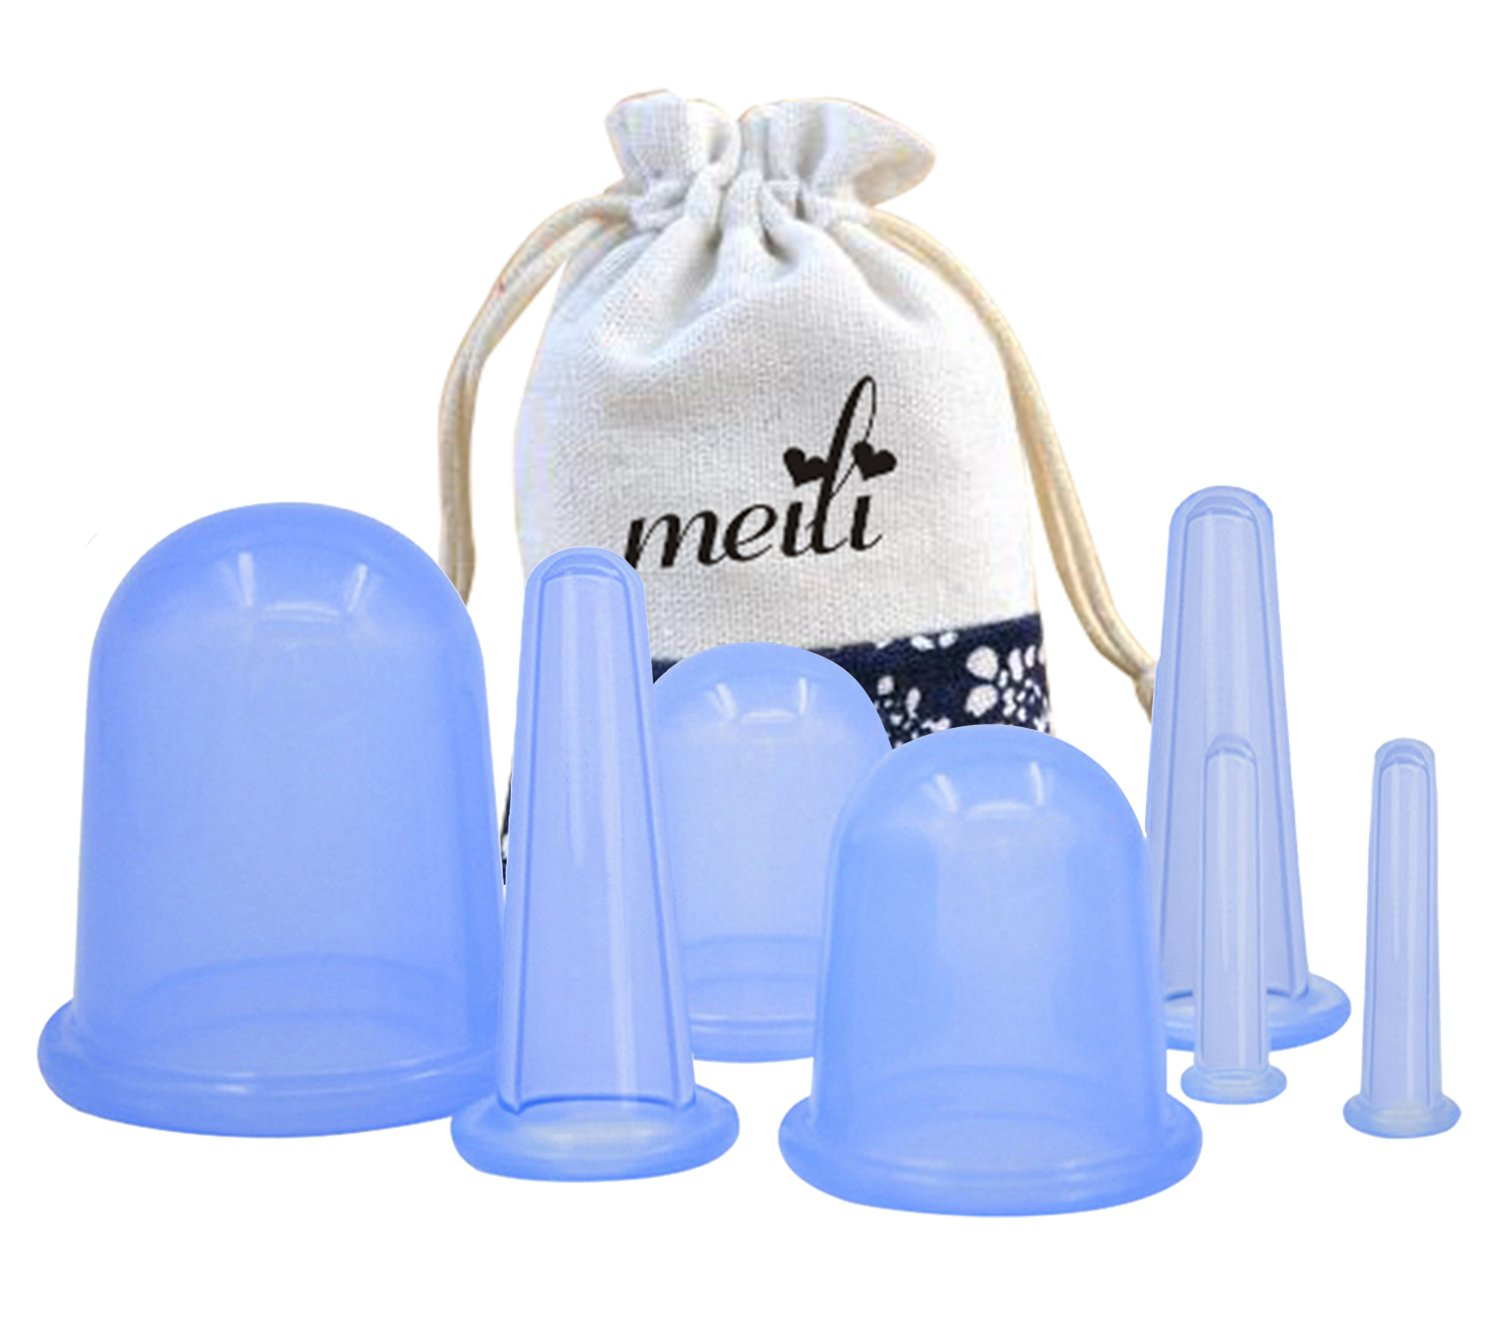 MEILI Silicone Facial & Body Cupping Therapy Suction Cup Set Of 7pcs Kit, Medical Silicone Massage Cellulite Cups For Pain Relief Relaxation and Cellulite removal?-